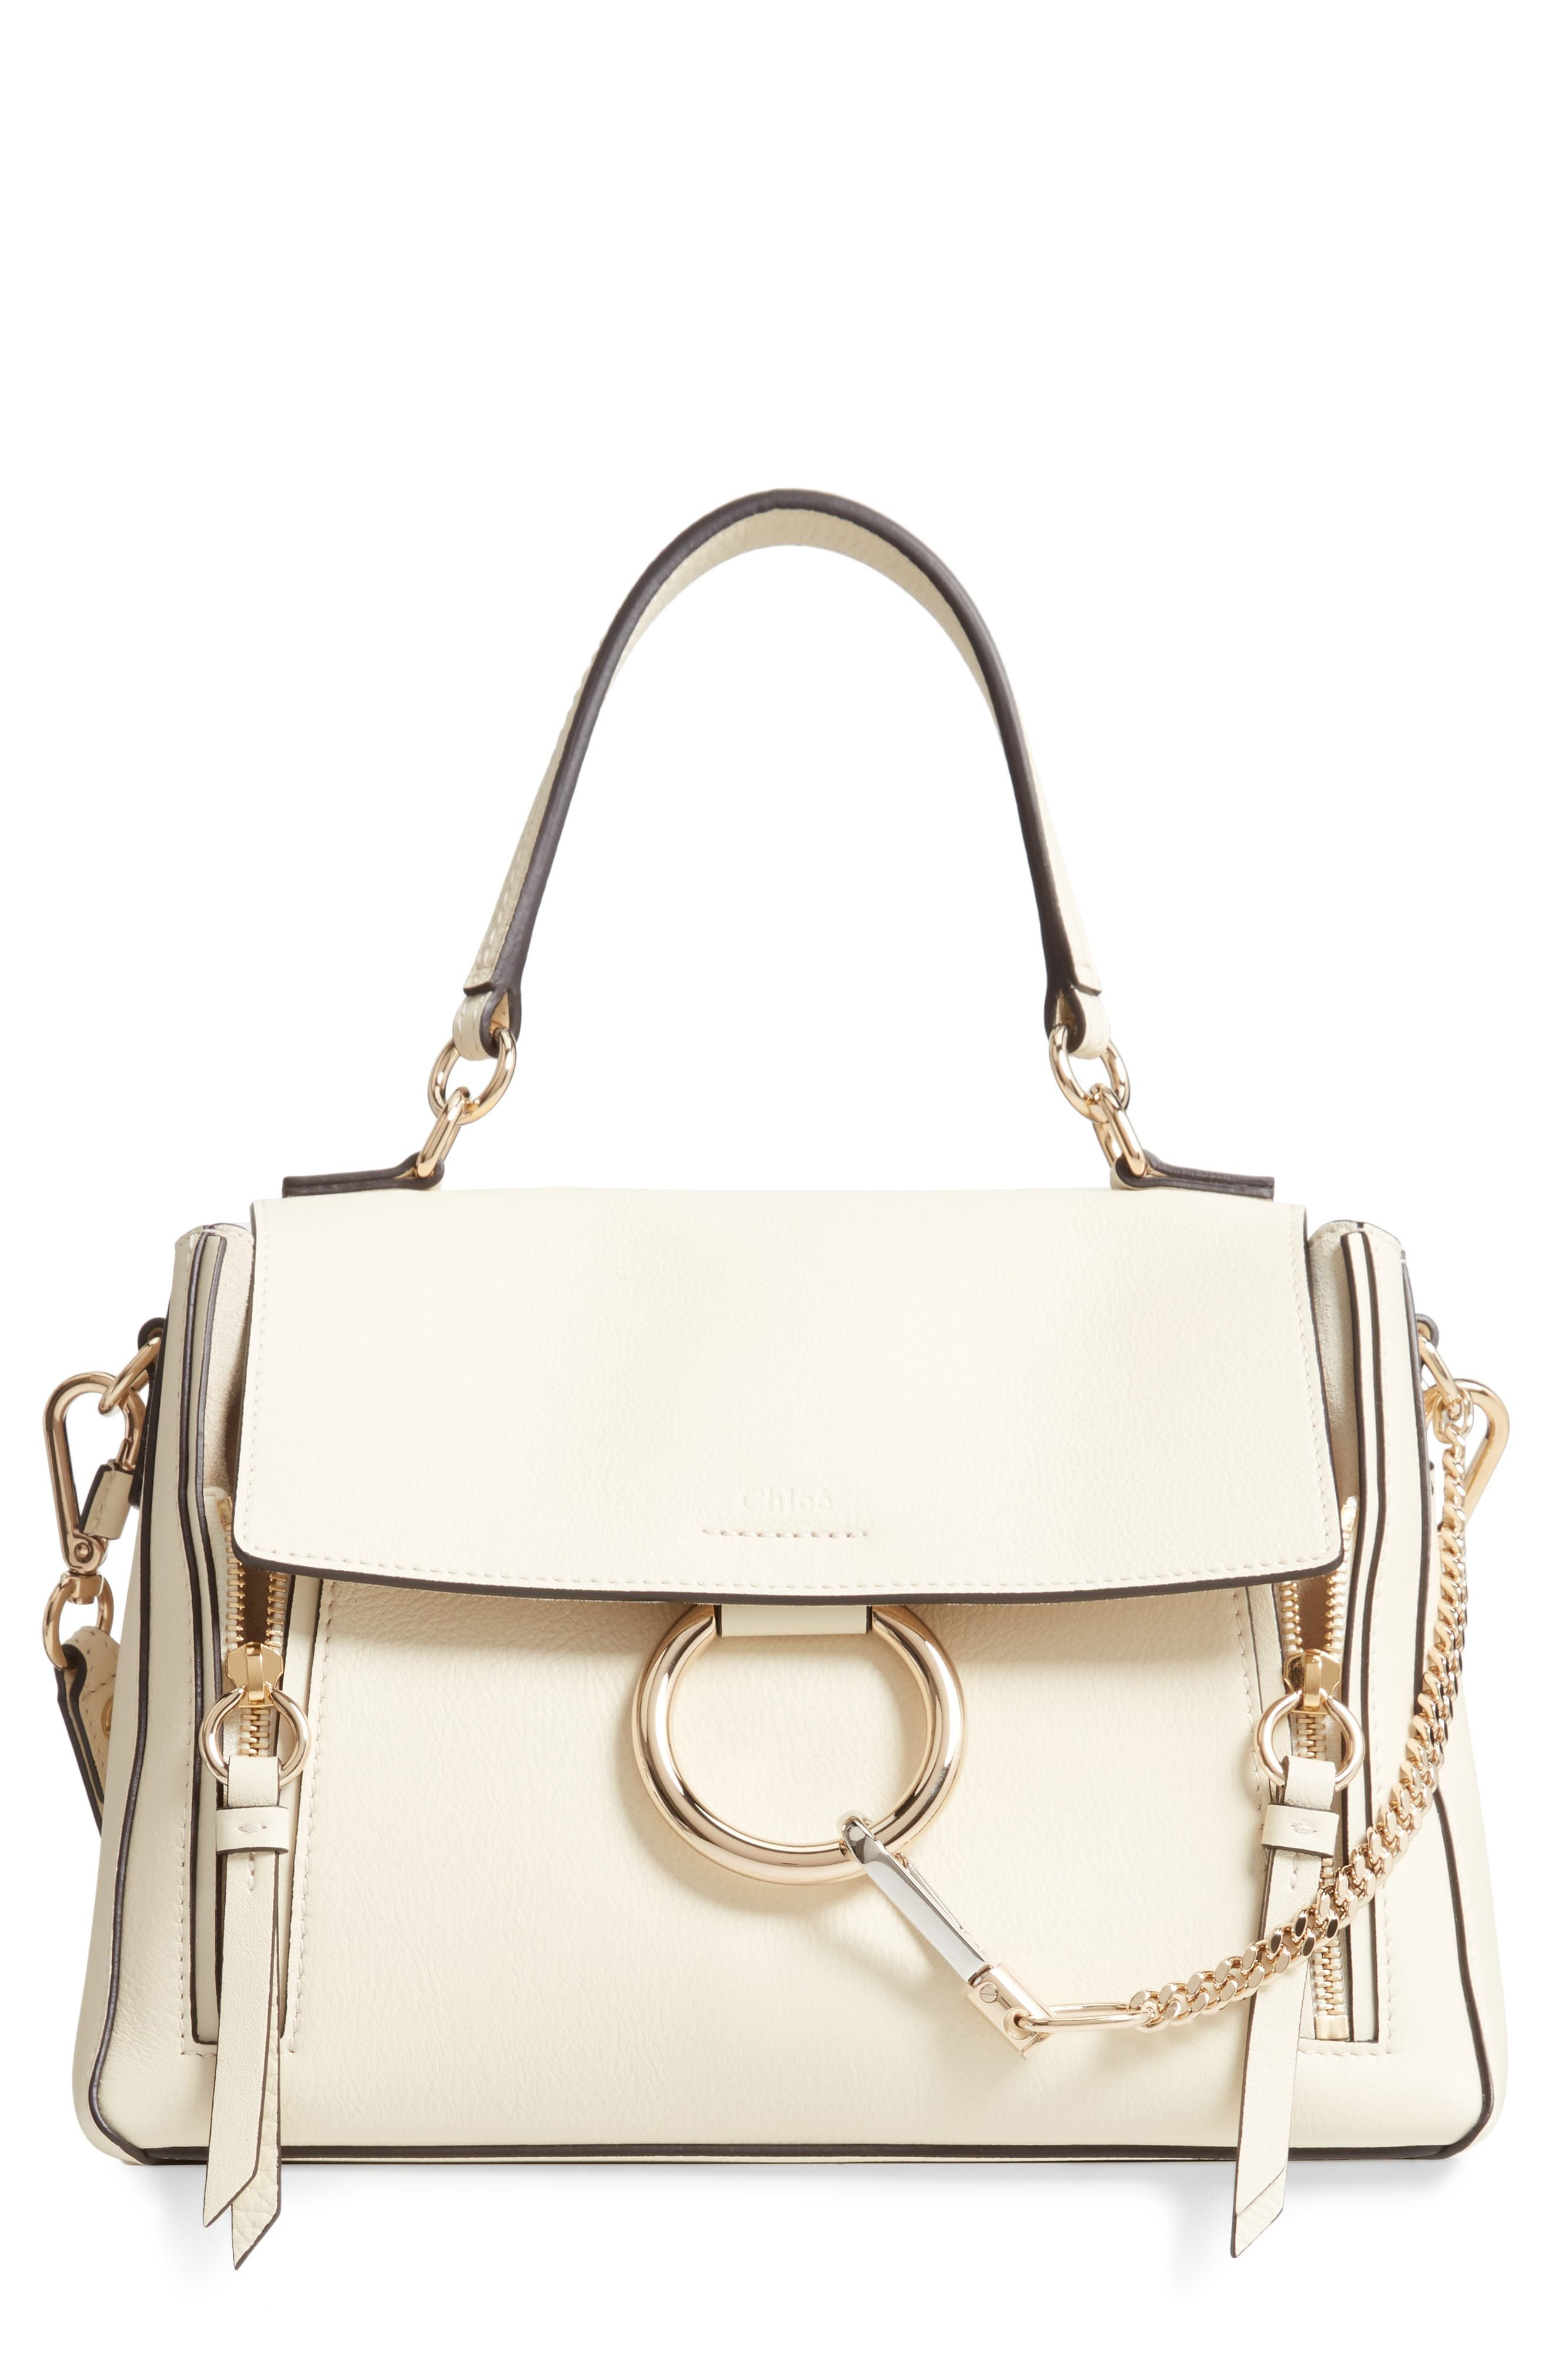 7e40f6397 Chloé Small Faye Day Leather Shoulder Bag - White in 2019 | Products ...